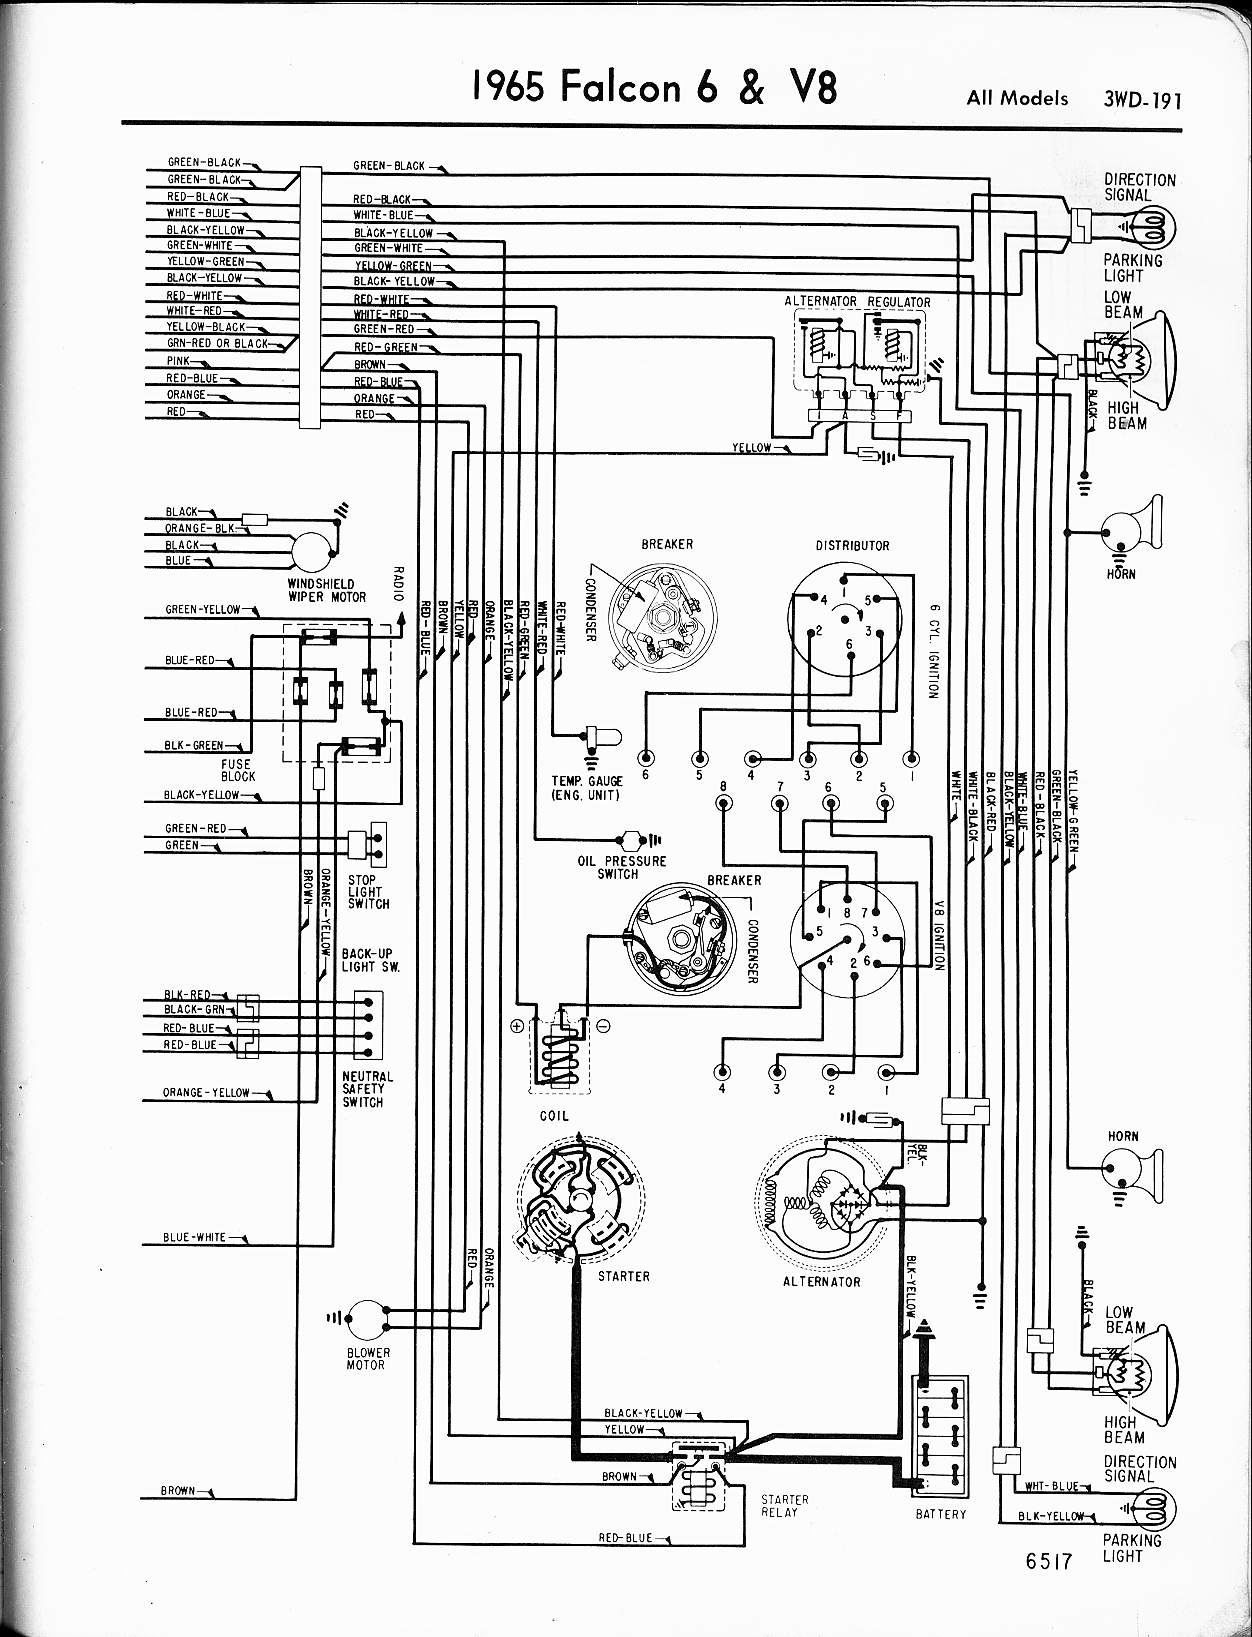 73 F100 Wiring Diagram 73 F100 Parts Wiring Diagram Odicis